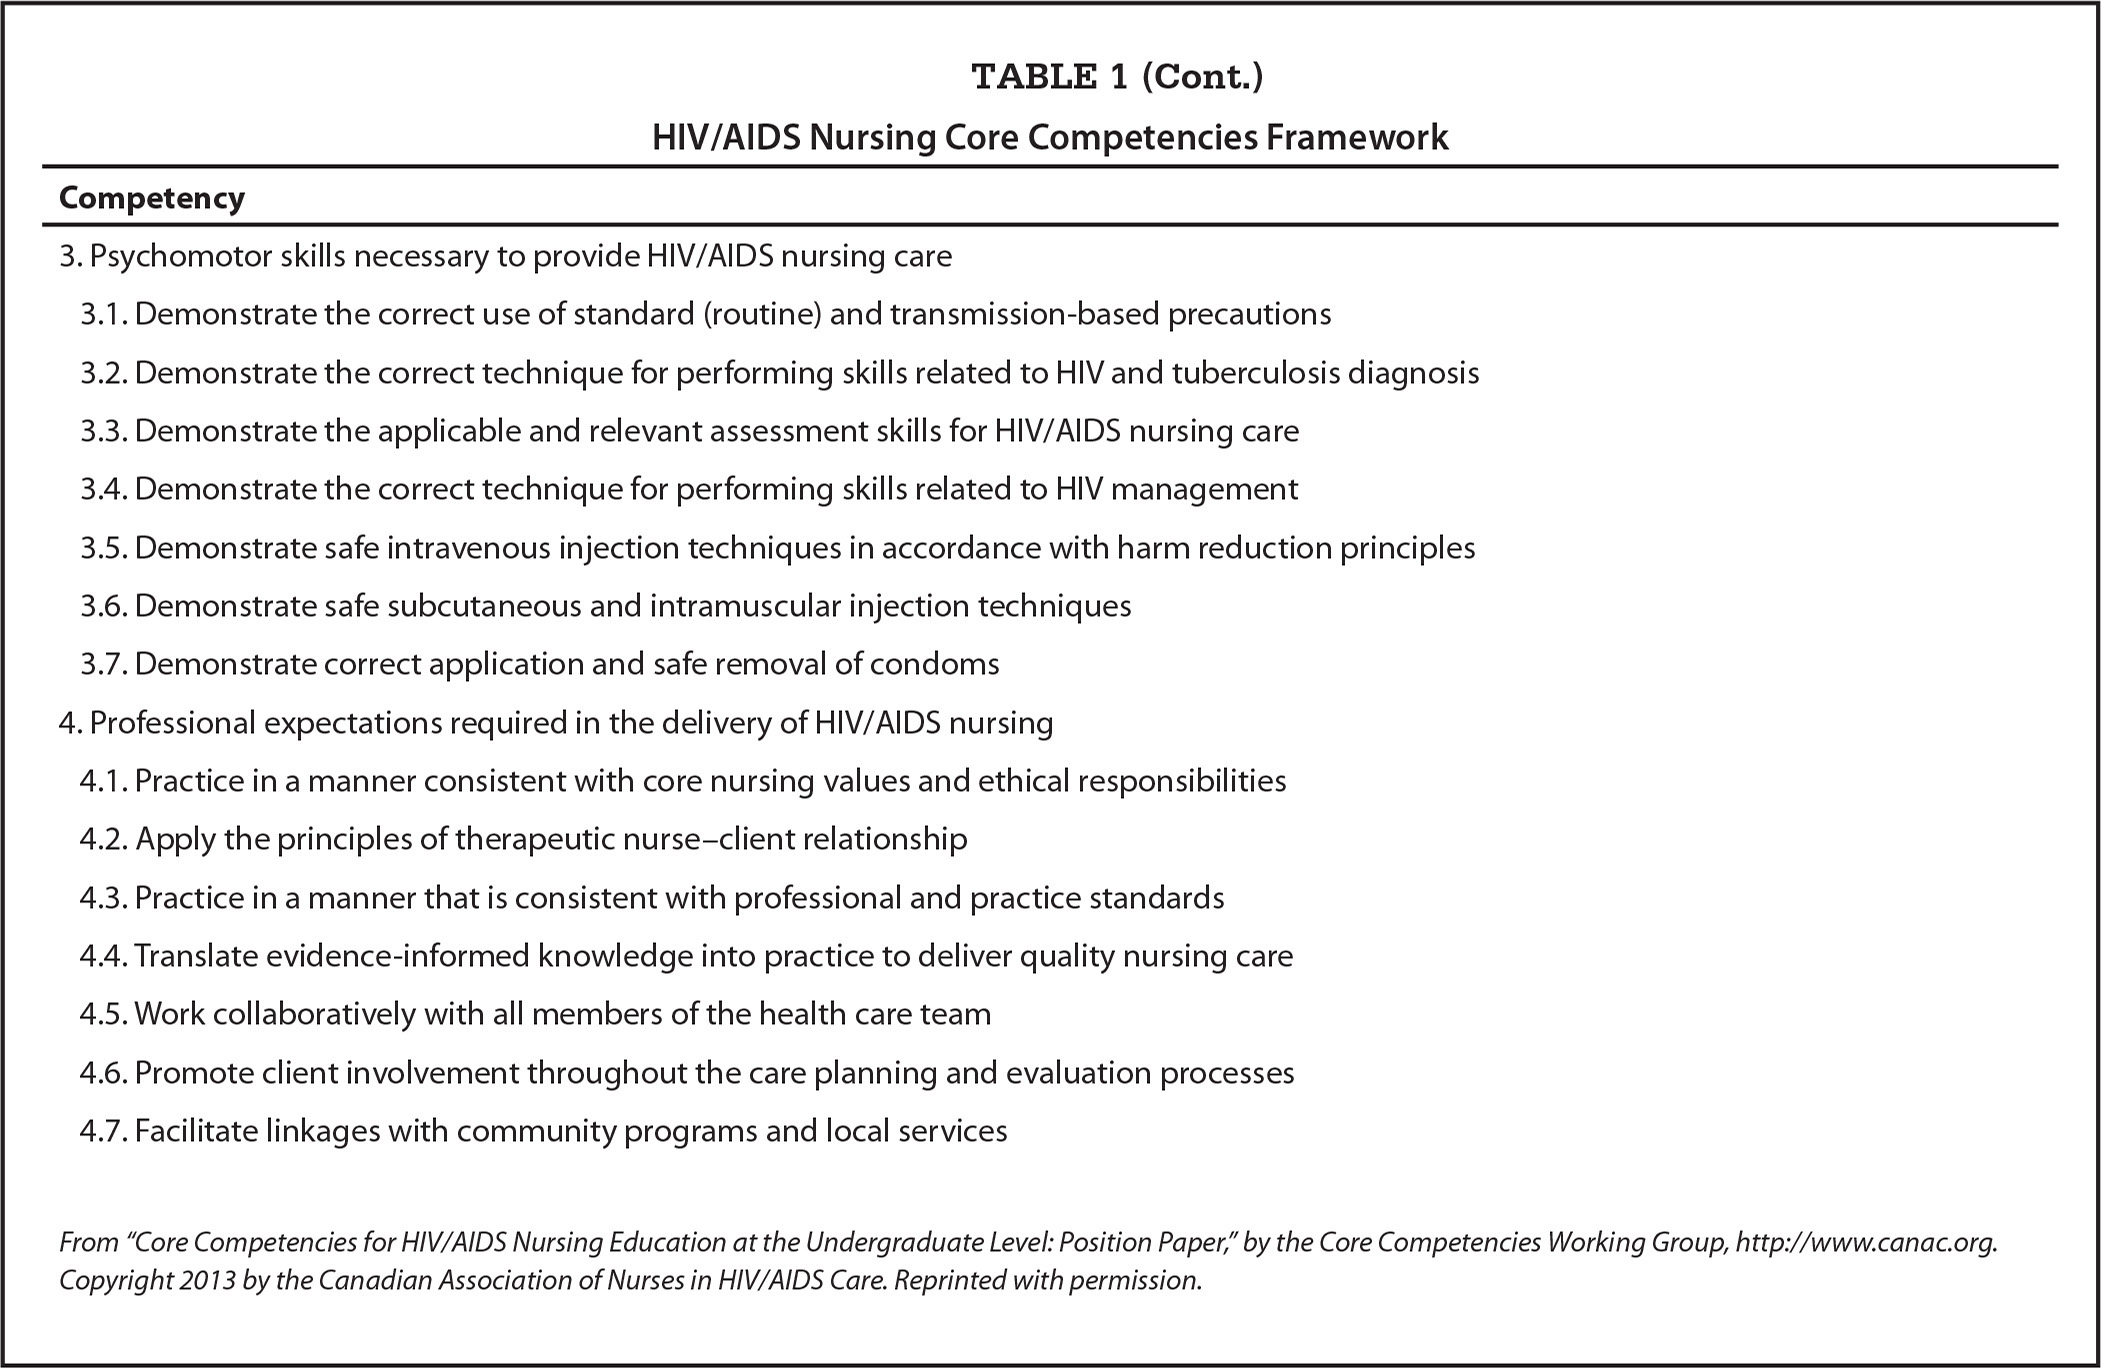 HIV/AIDS Nursing Core Competencies Framework